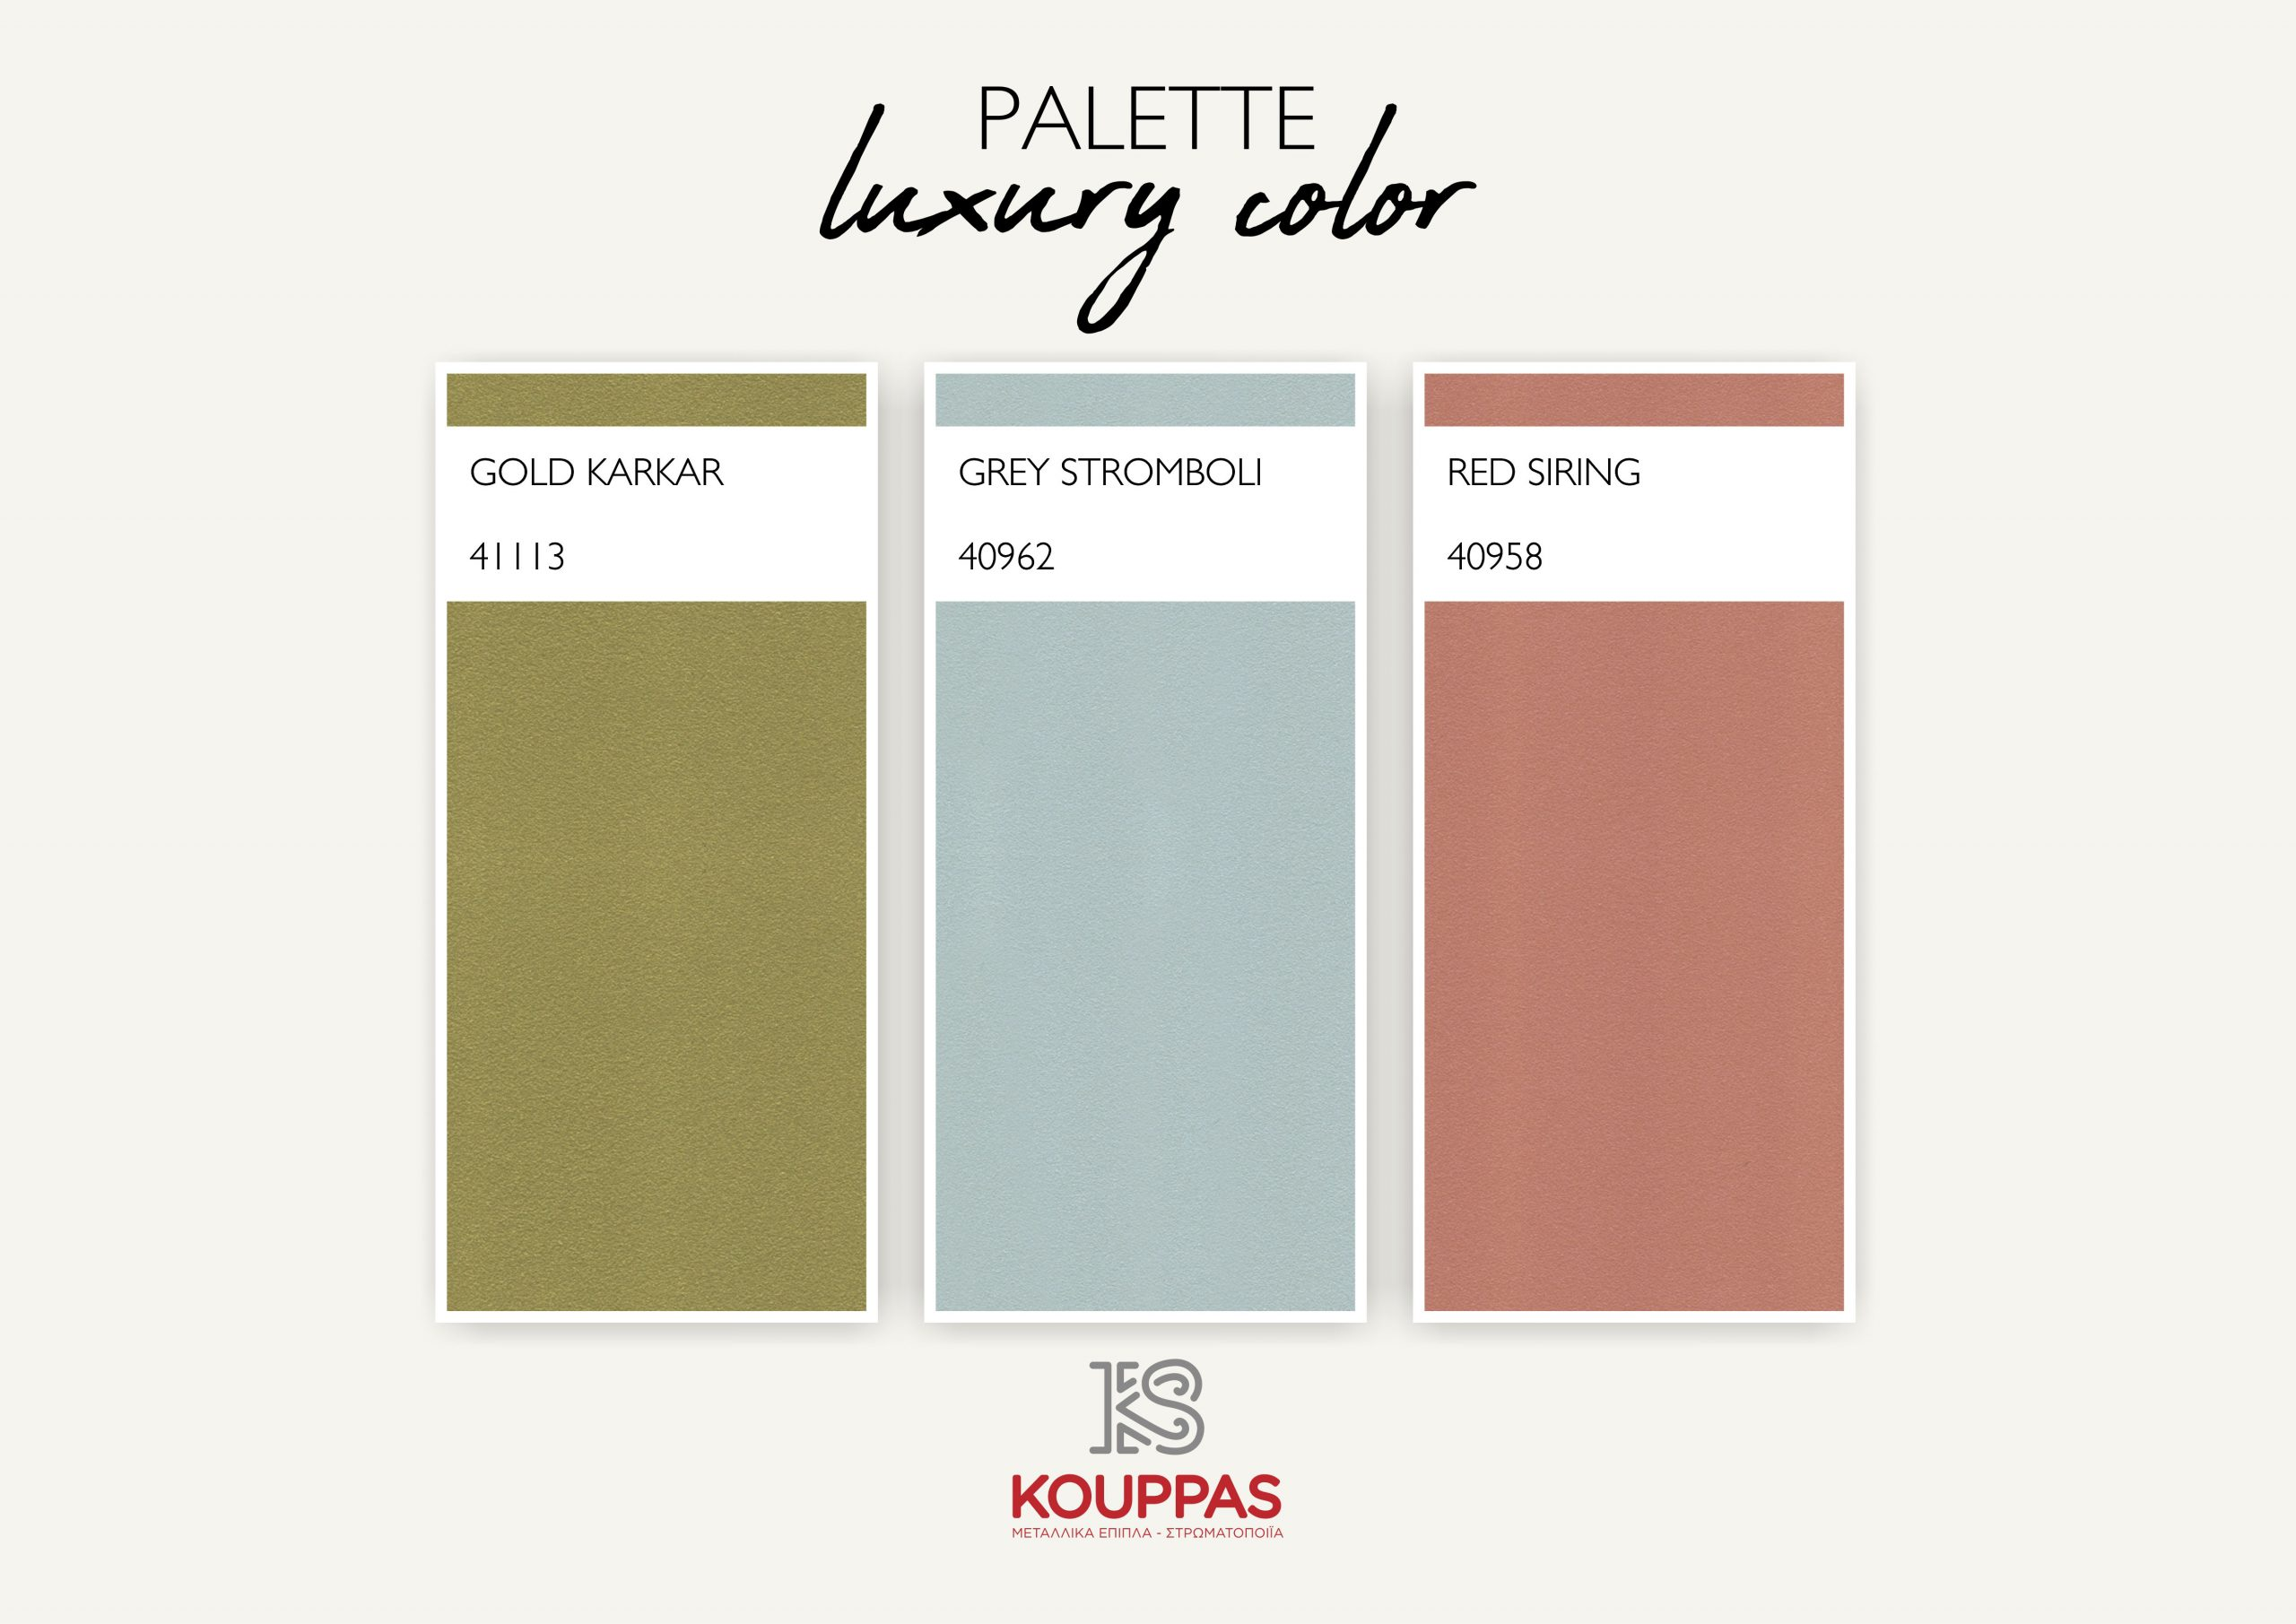 Luxury-Color-Palette-scaled.jpg